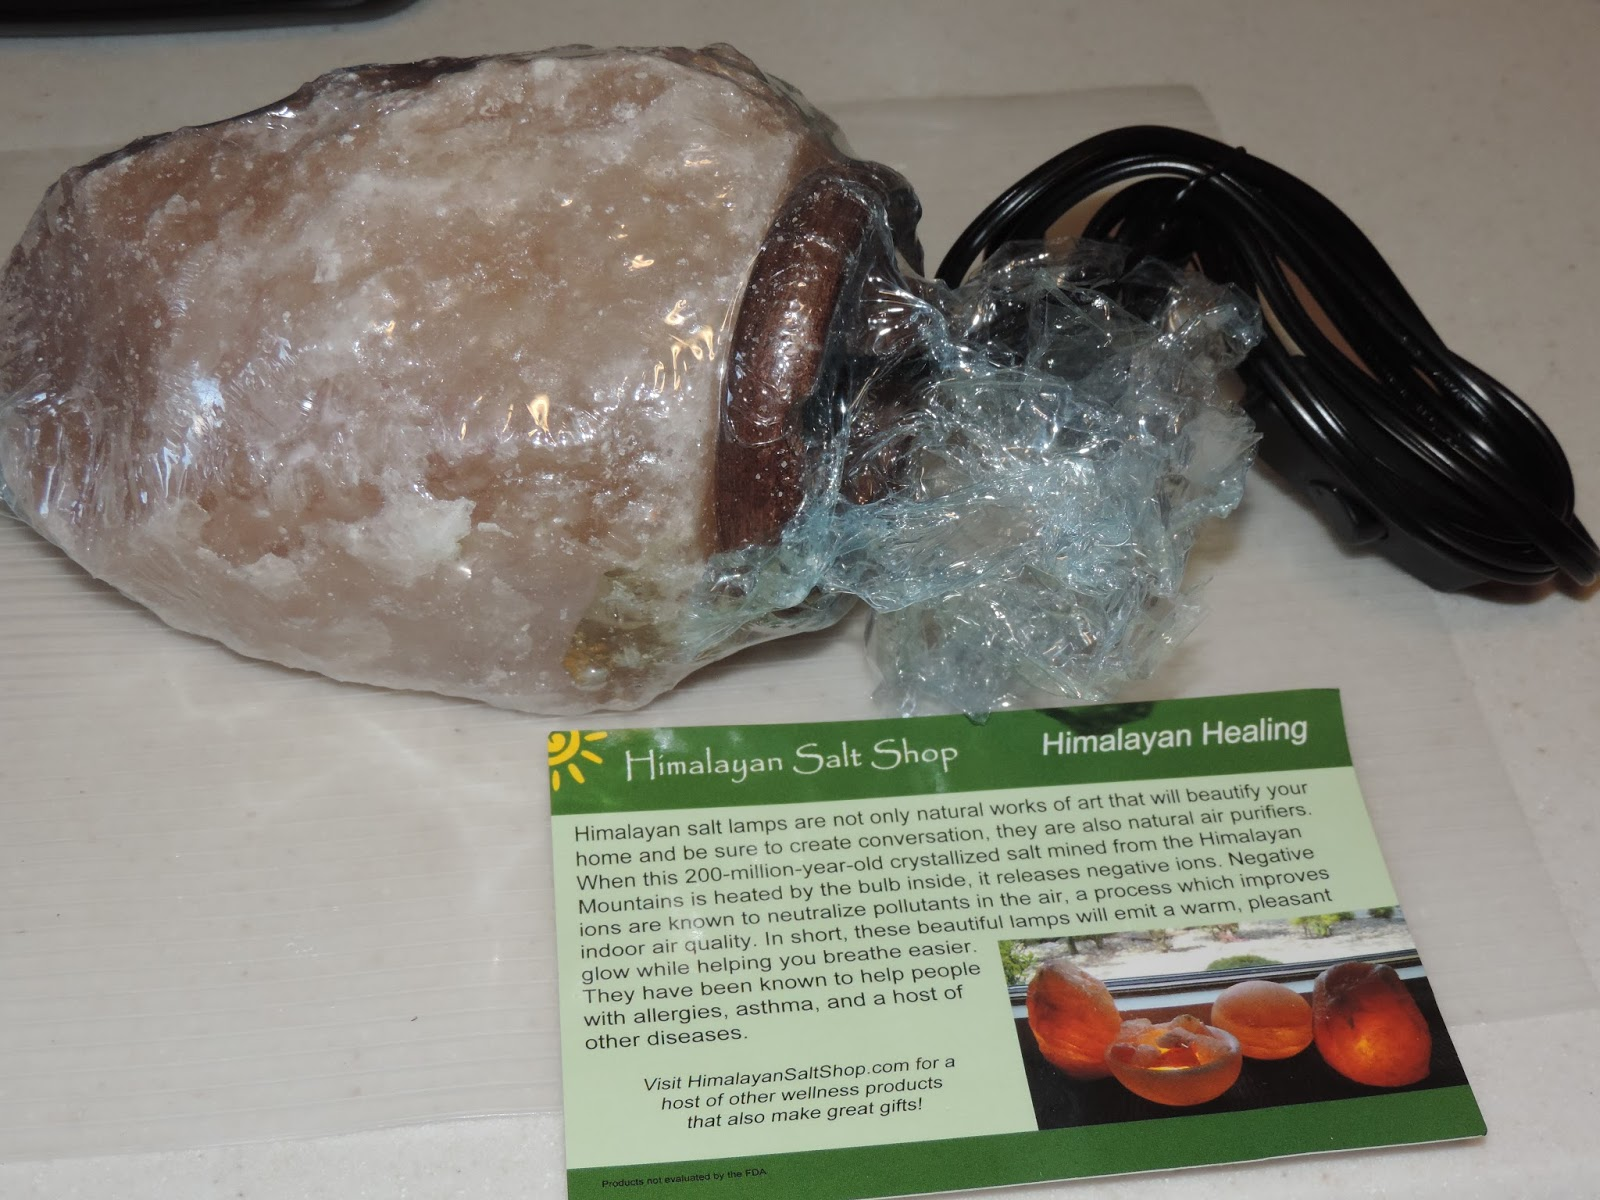 Himalayan Salt Lamps Sweating : Mail4Rosey: 20% Off #HimalayanSalt Lamp from Himalayan Salt Shop!